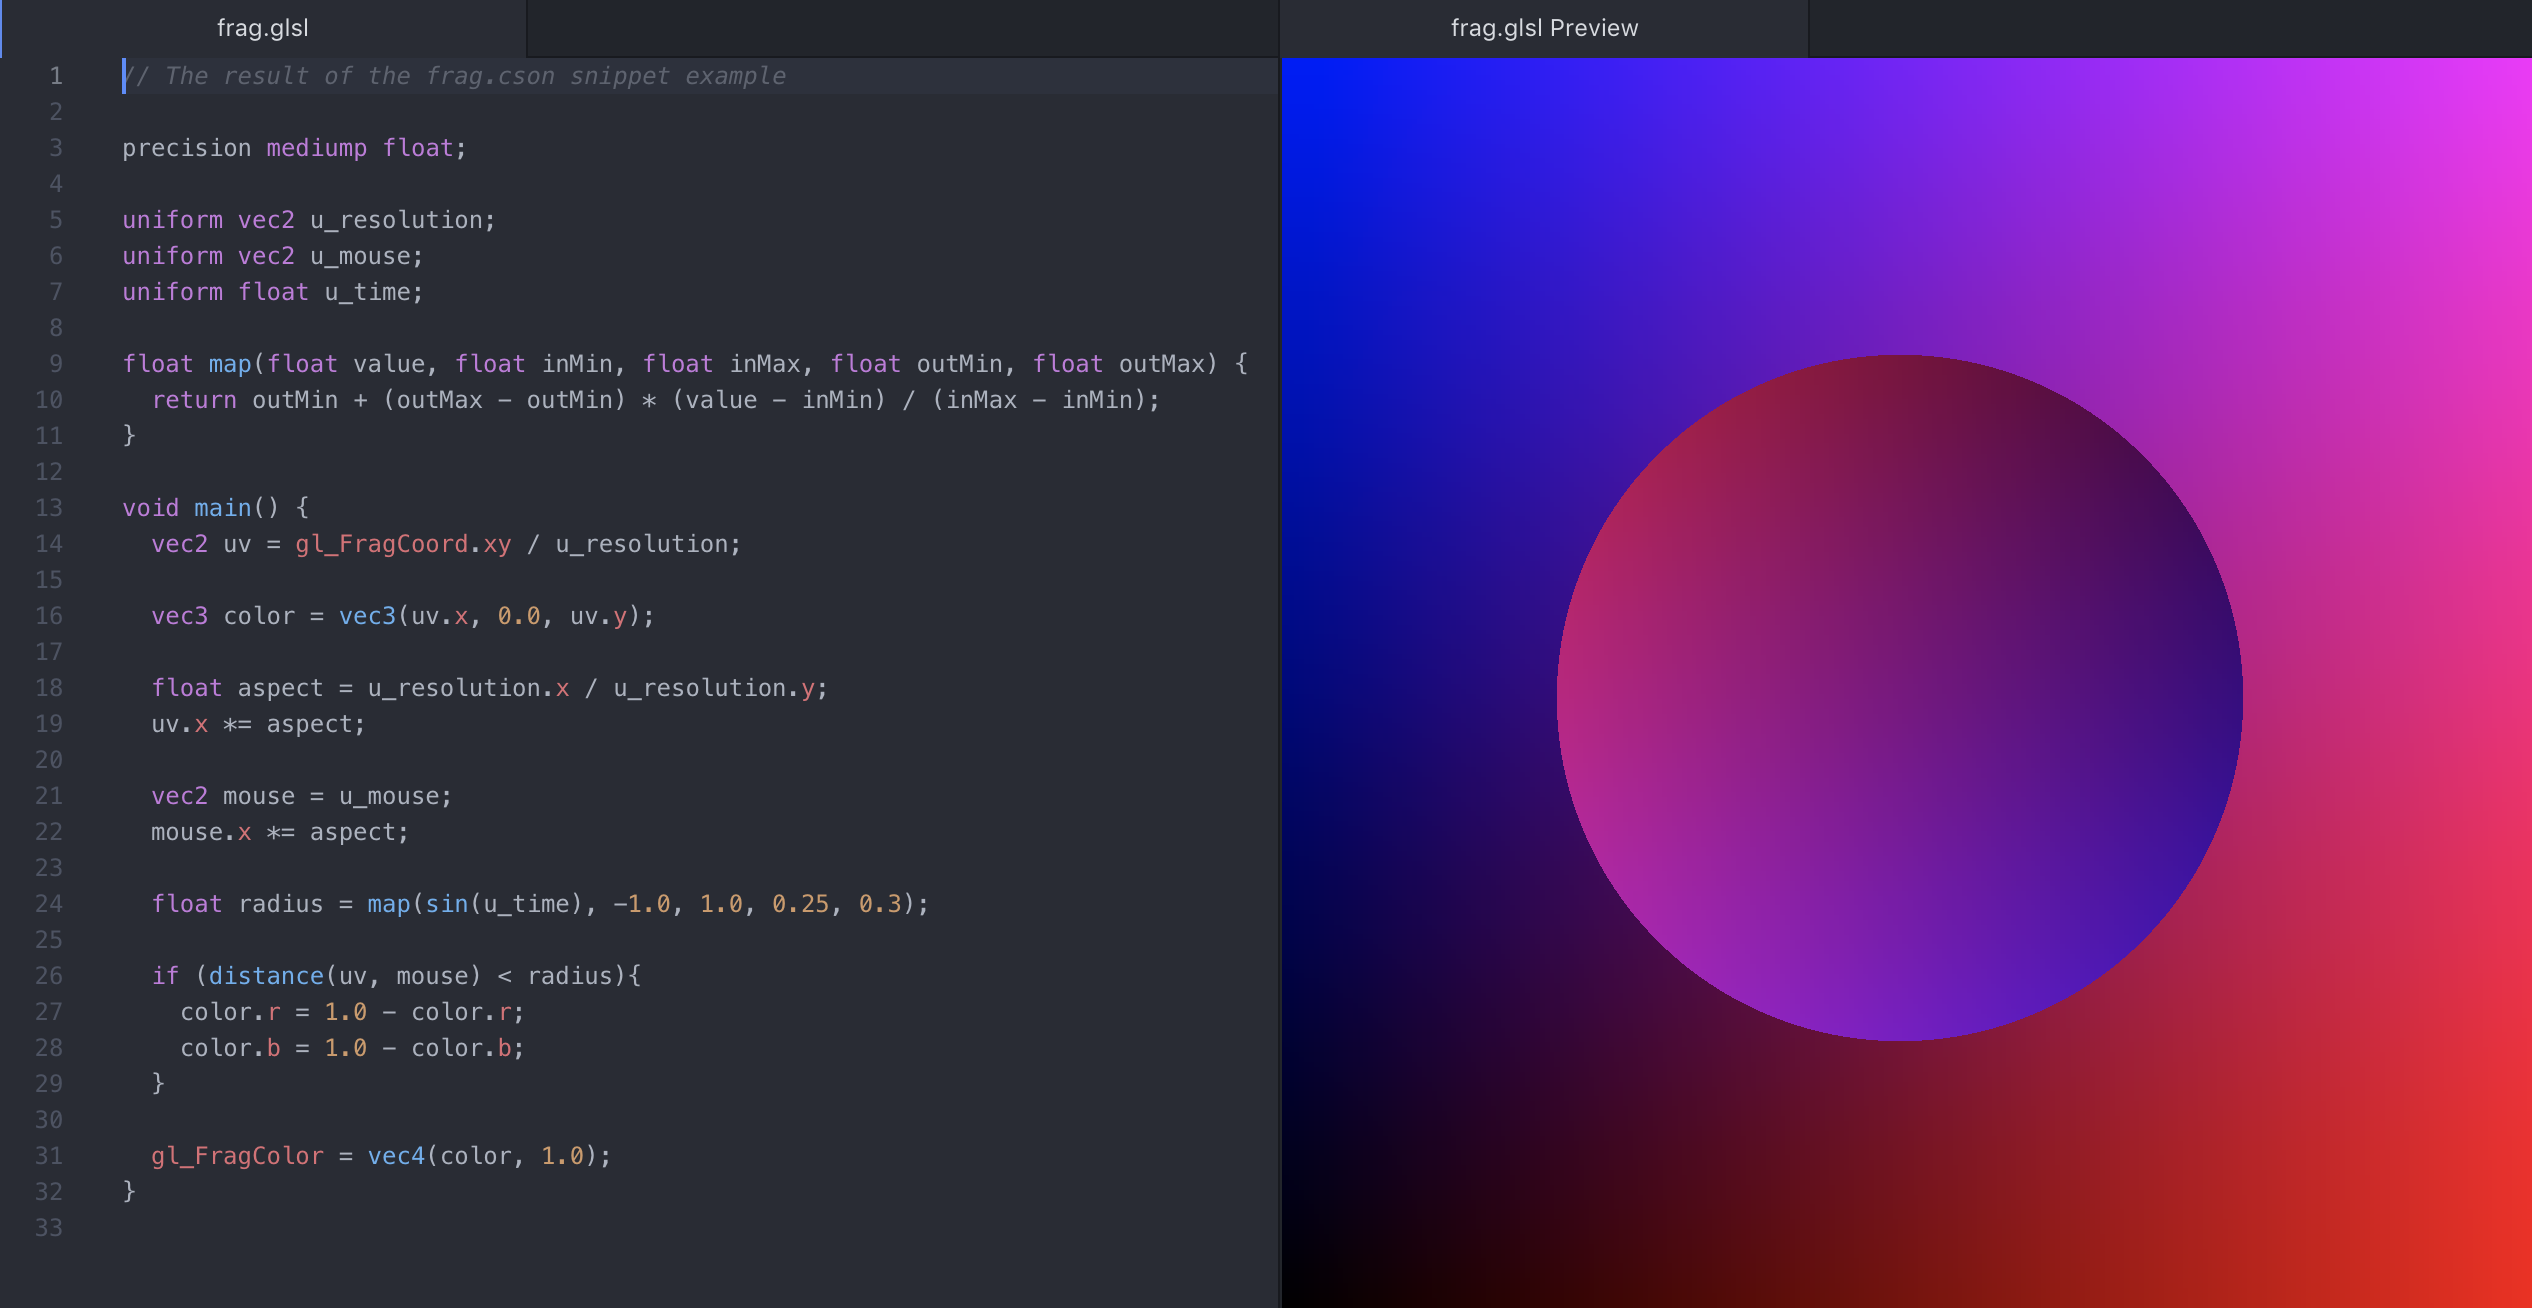 glsl-preview